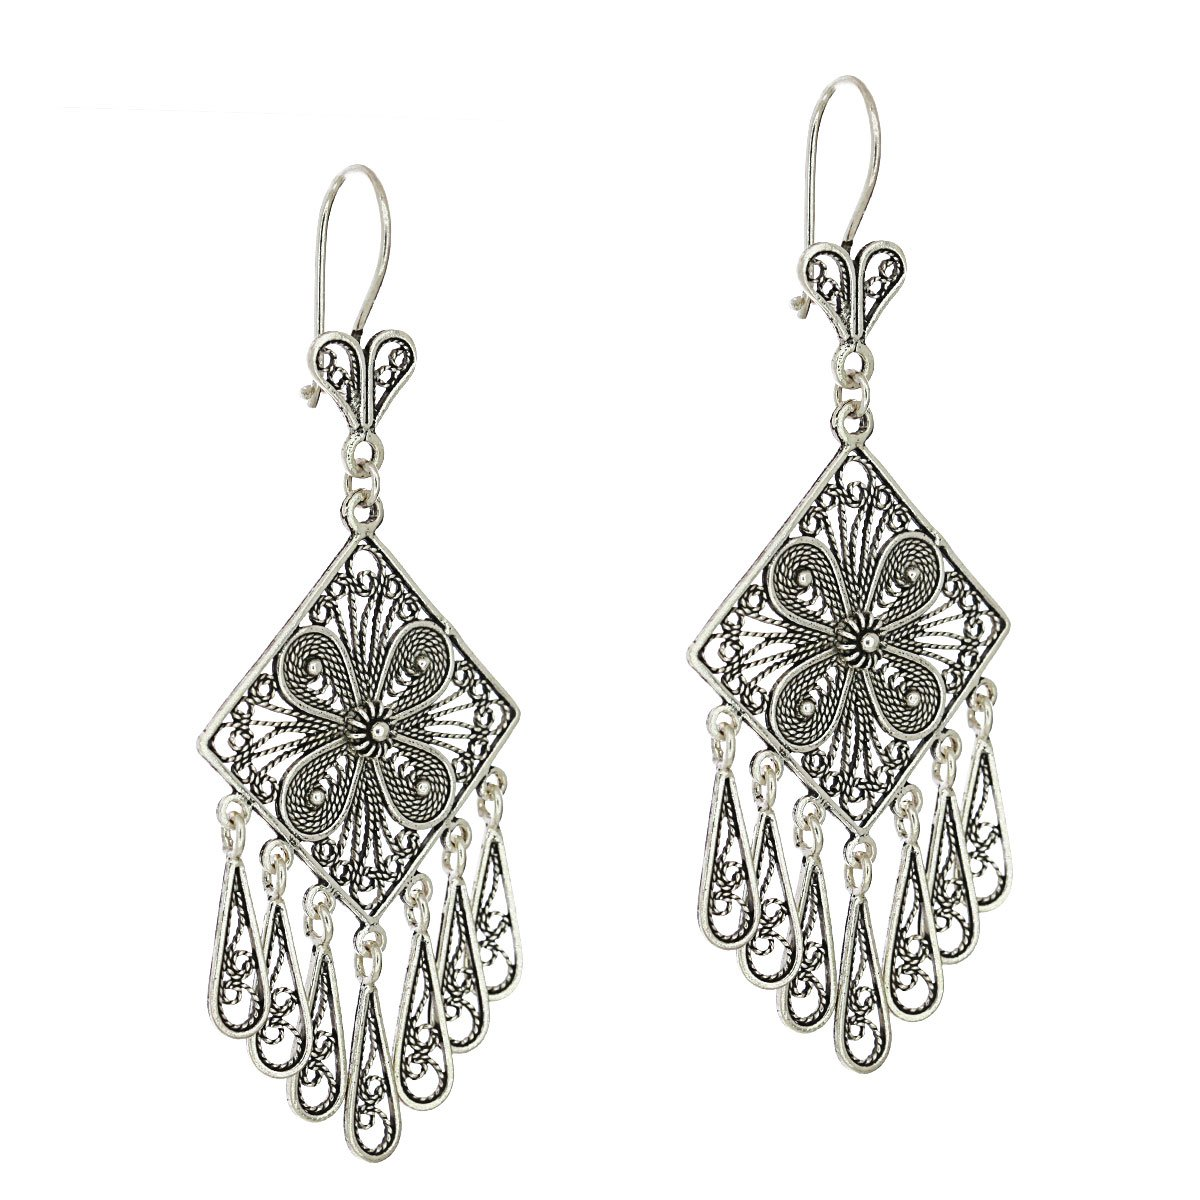 925 Sterling Silver Artisan Filigree Tassel Chandelier Earrings